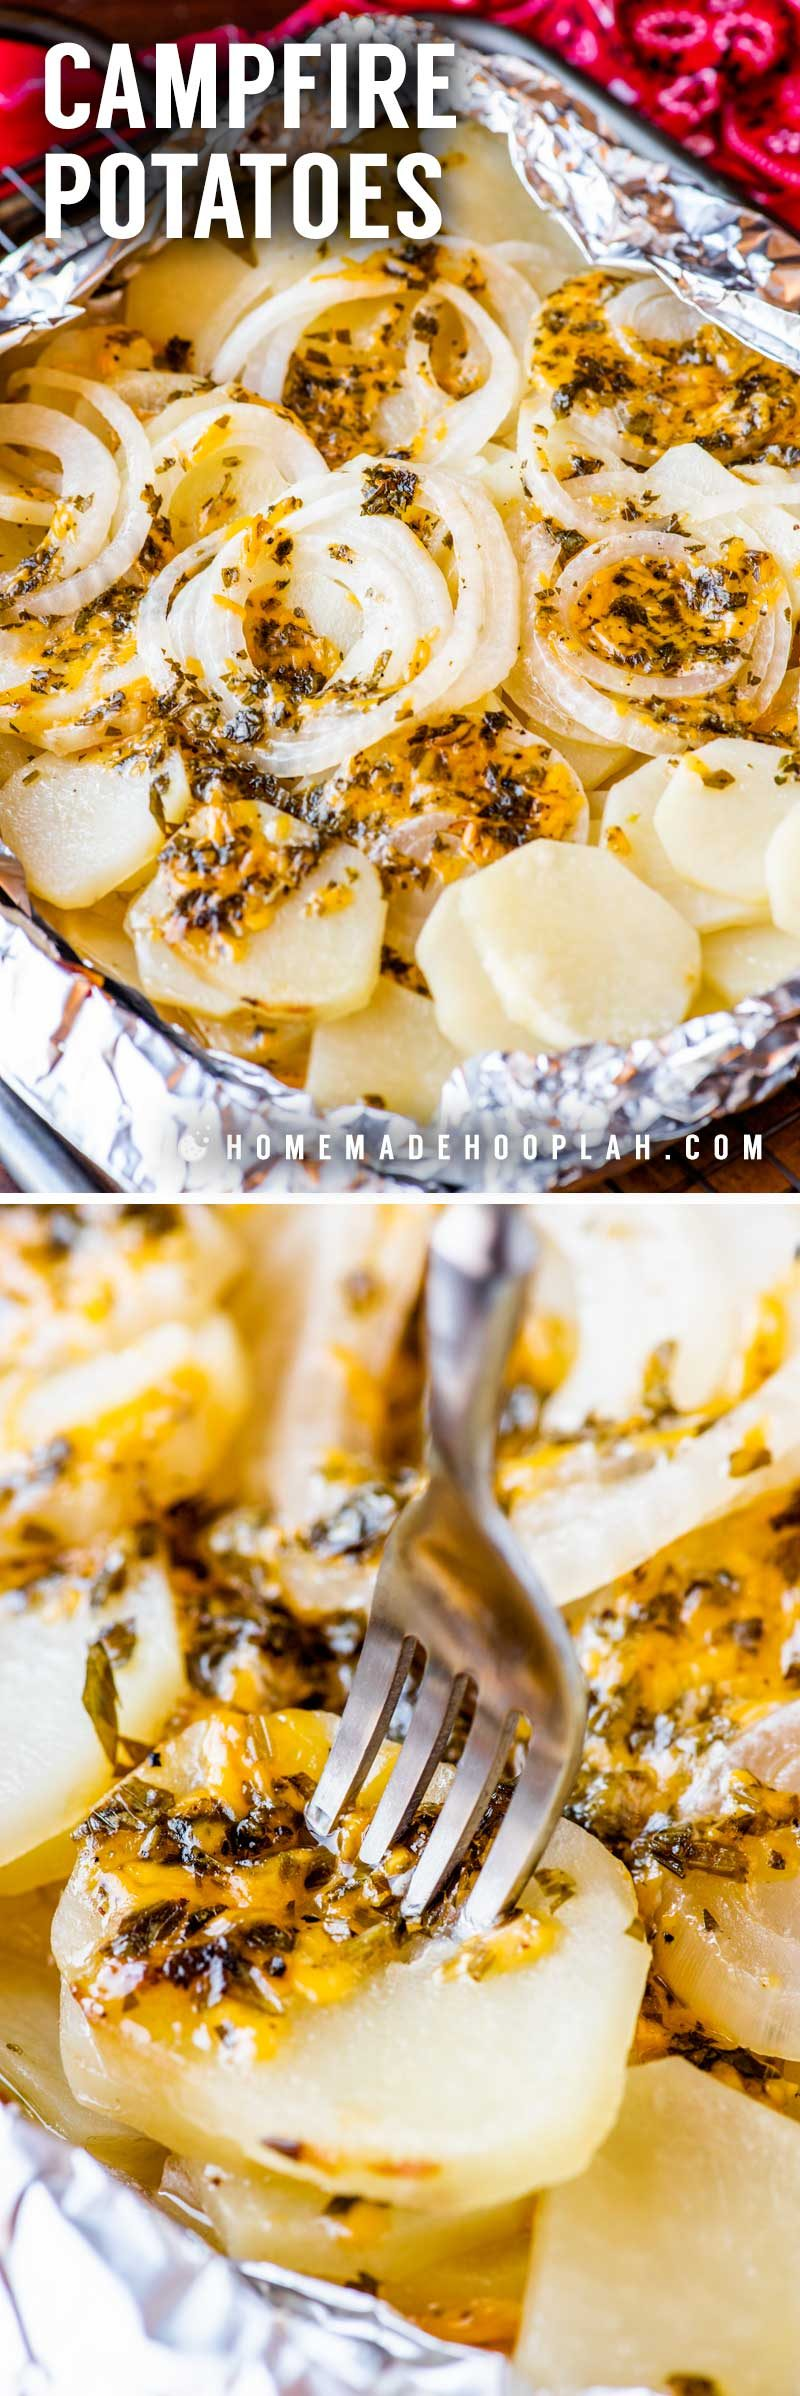 How to make campfire baked potatoes in a foil packet.